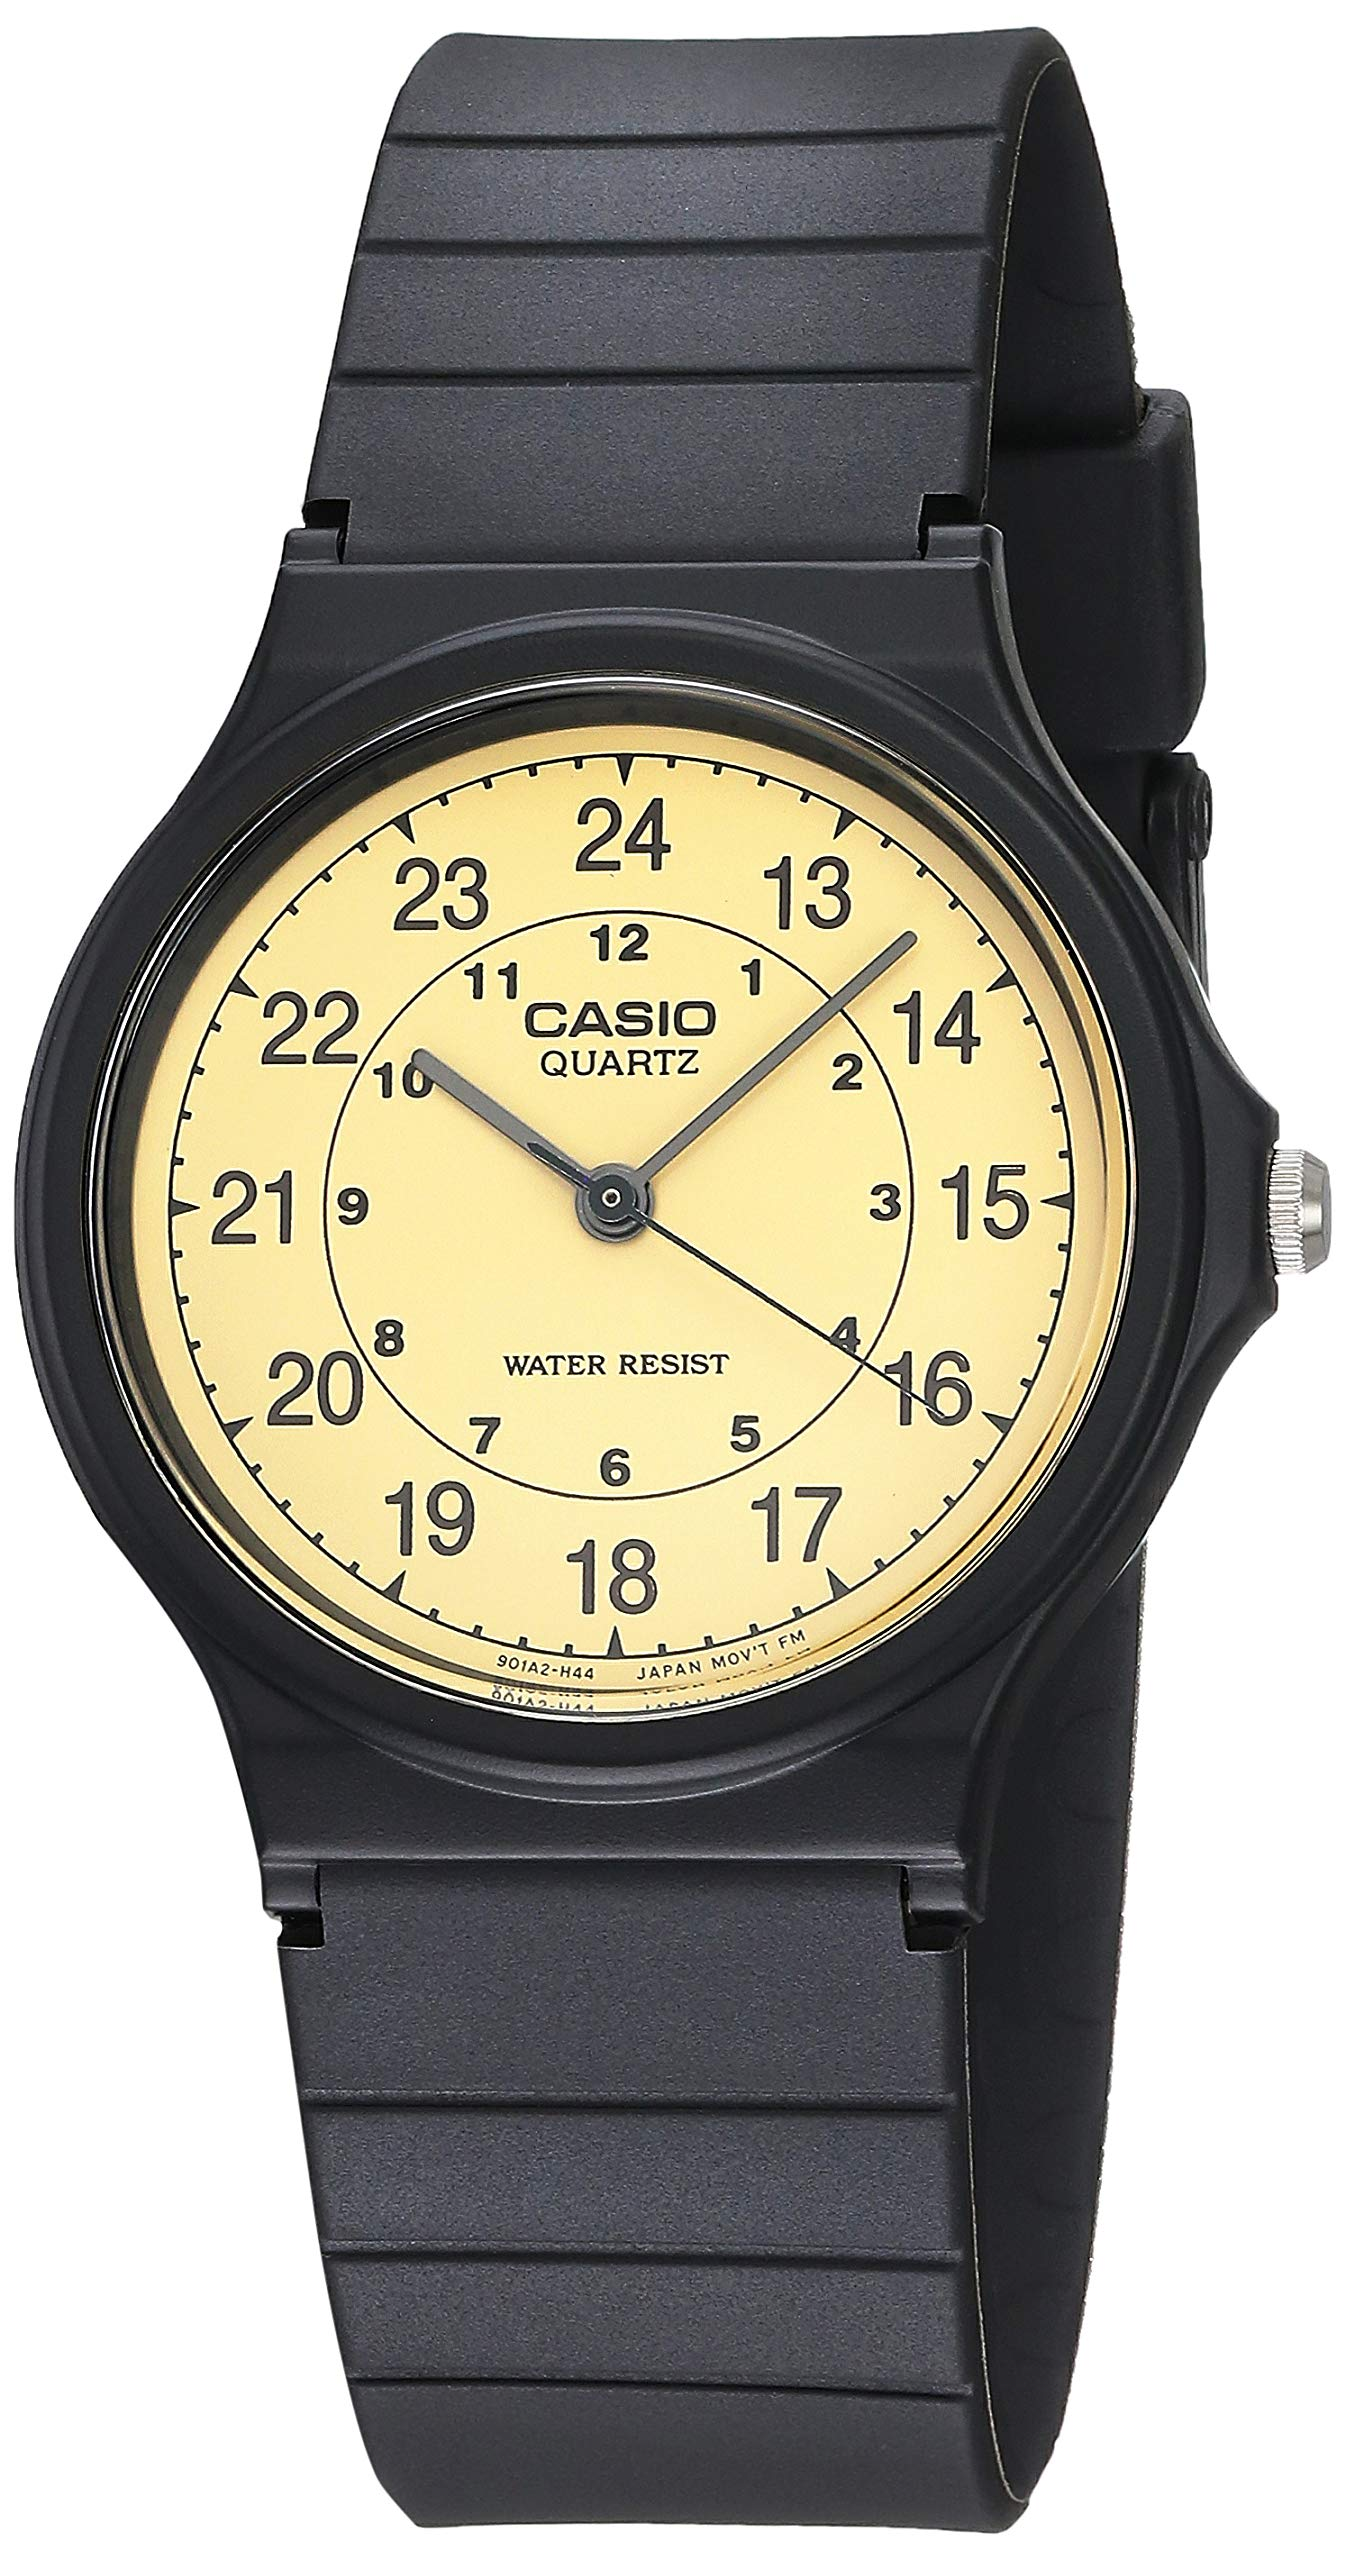 Men's MQ24-9B Classic Analog Watch